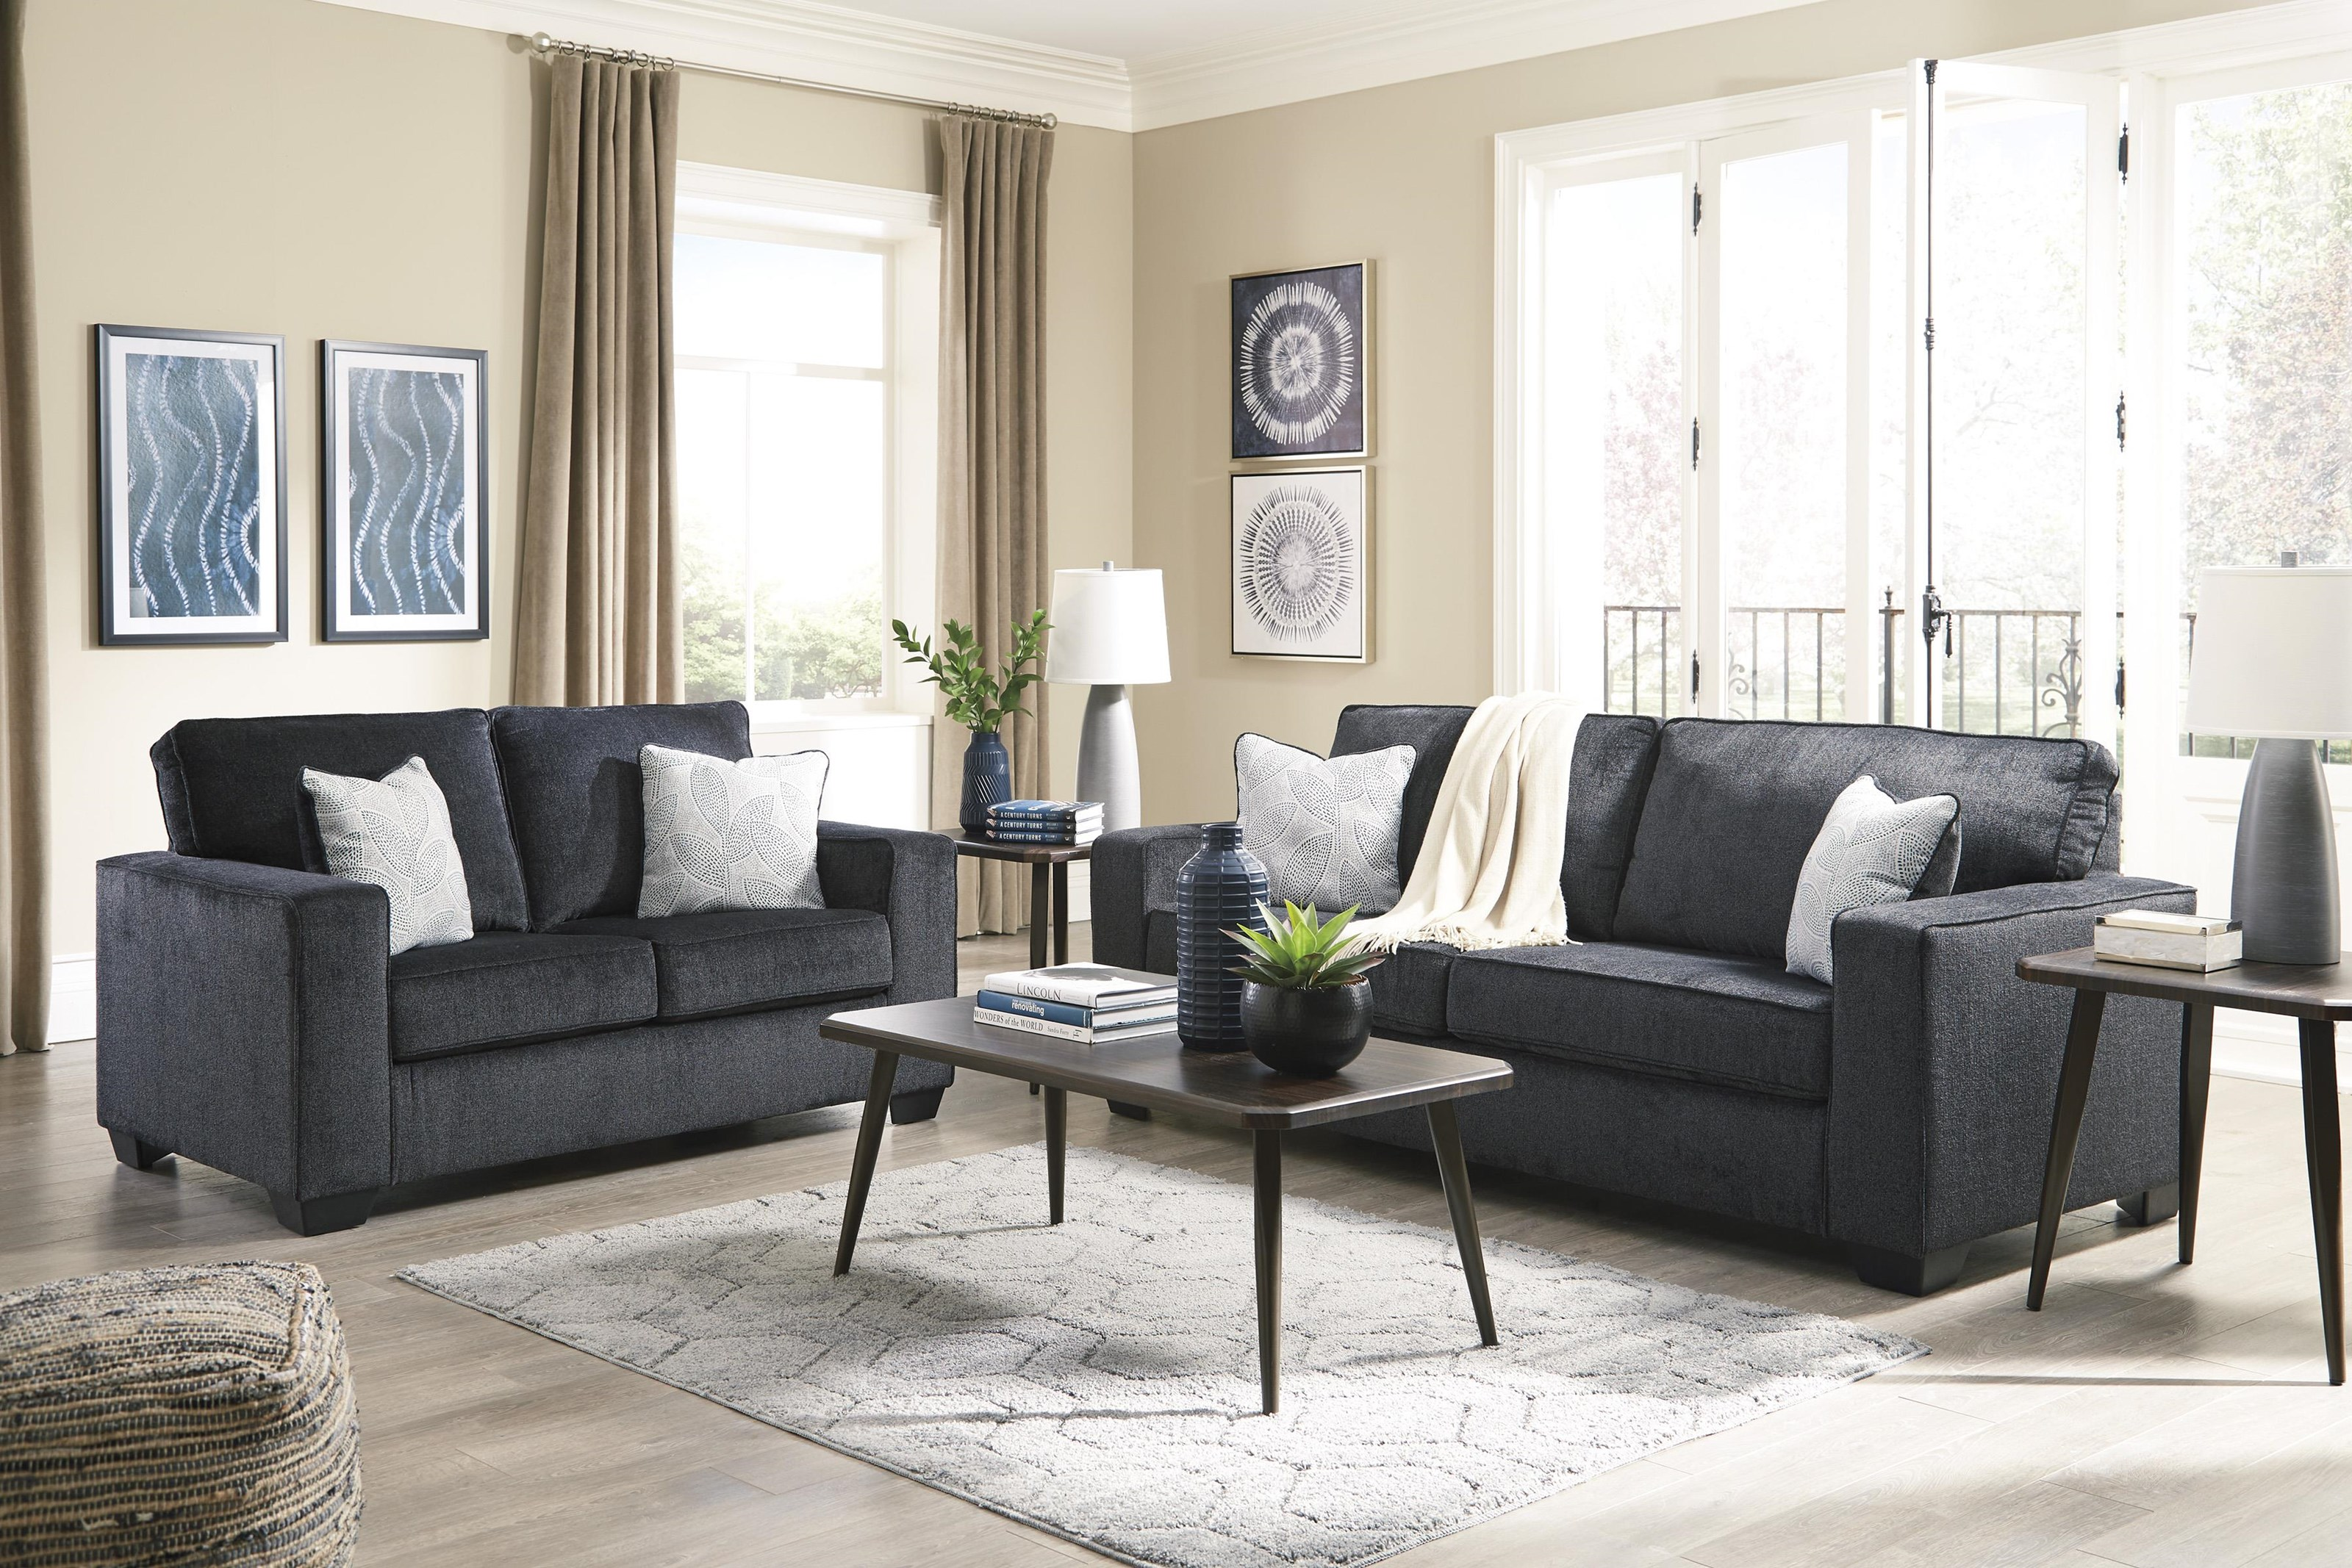 Altari 8PC LIVING ROOM by Signature Design by Ashley at Value City Furniture